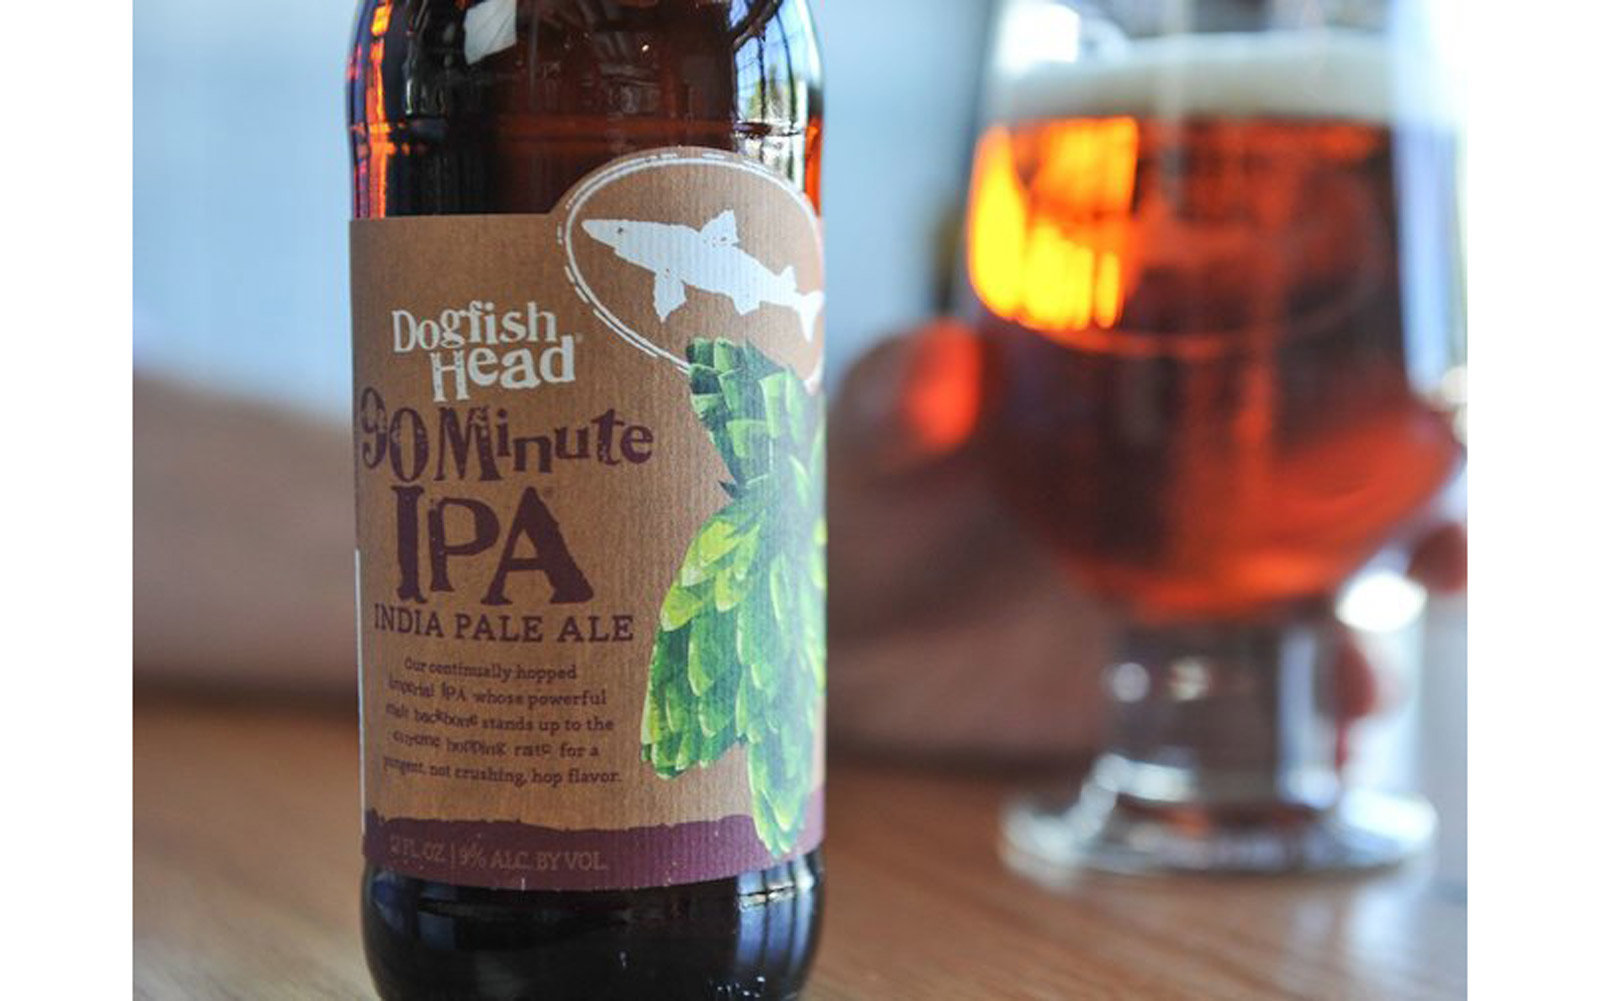 Delaware: Dogfish Head Brewery